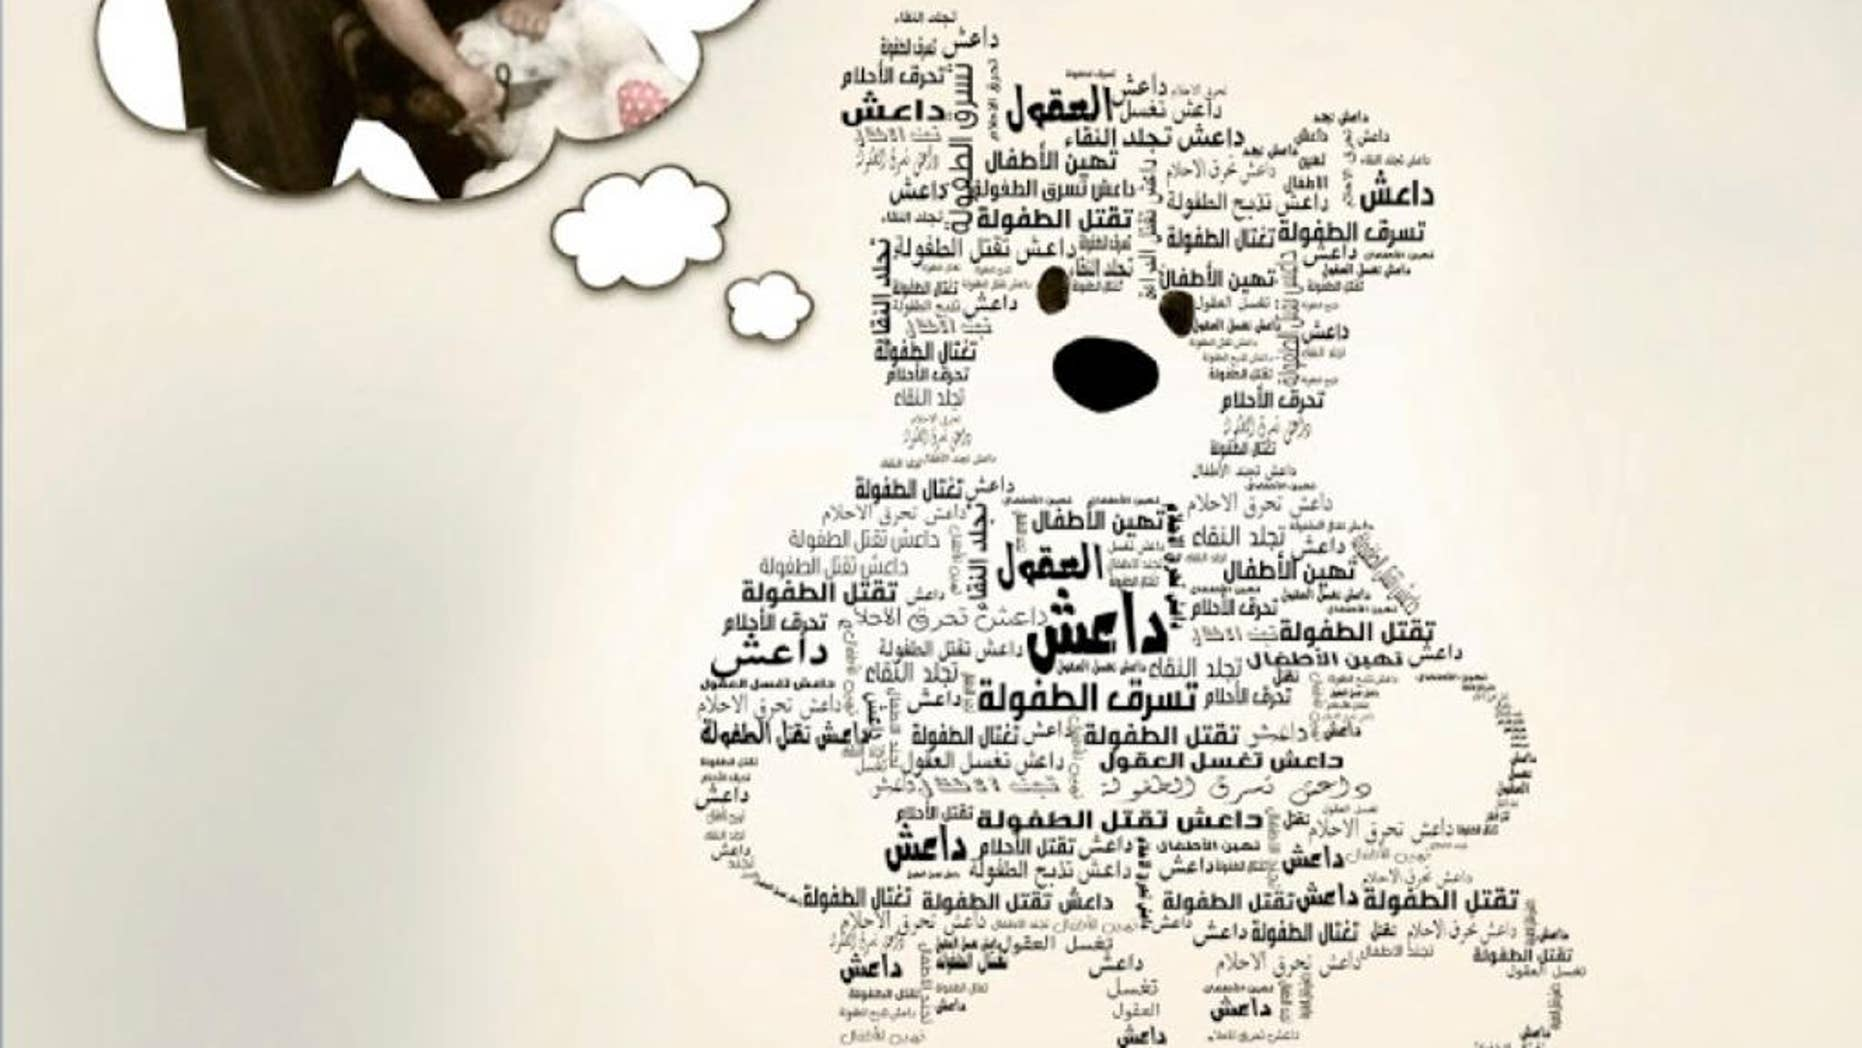 """This image provided by the State Department shows an image of a teddy bear with Arabic writing and message saying ISIS """"slaughters childhood,"""" 'kills innocence,"""" """"lashes purity"""" or """"humiliates children."""""""